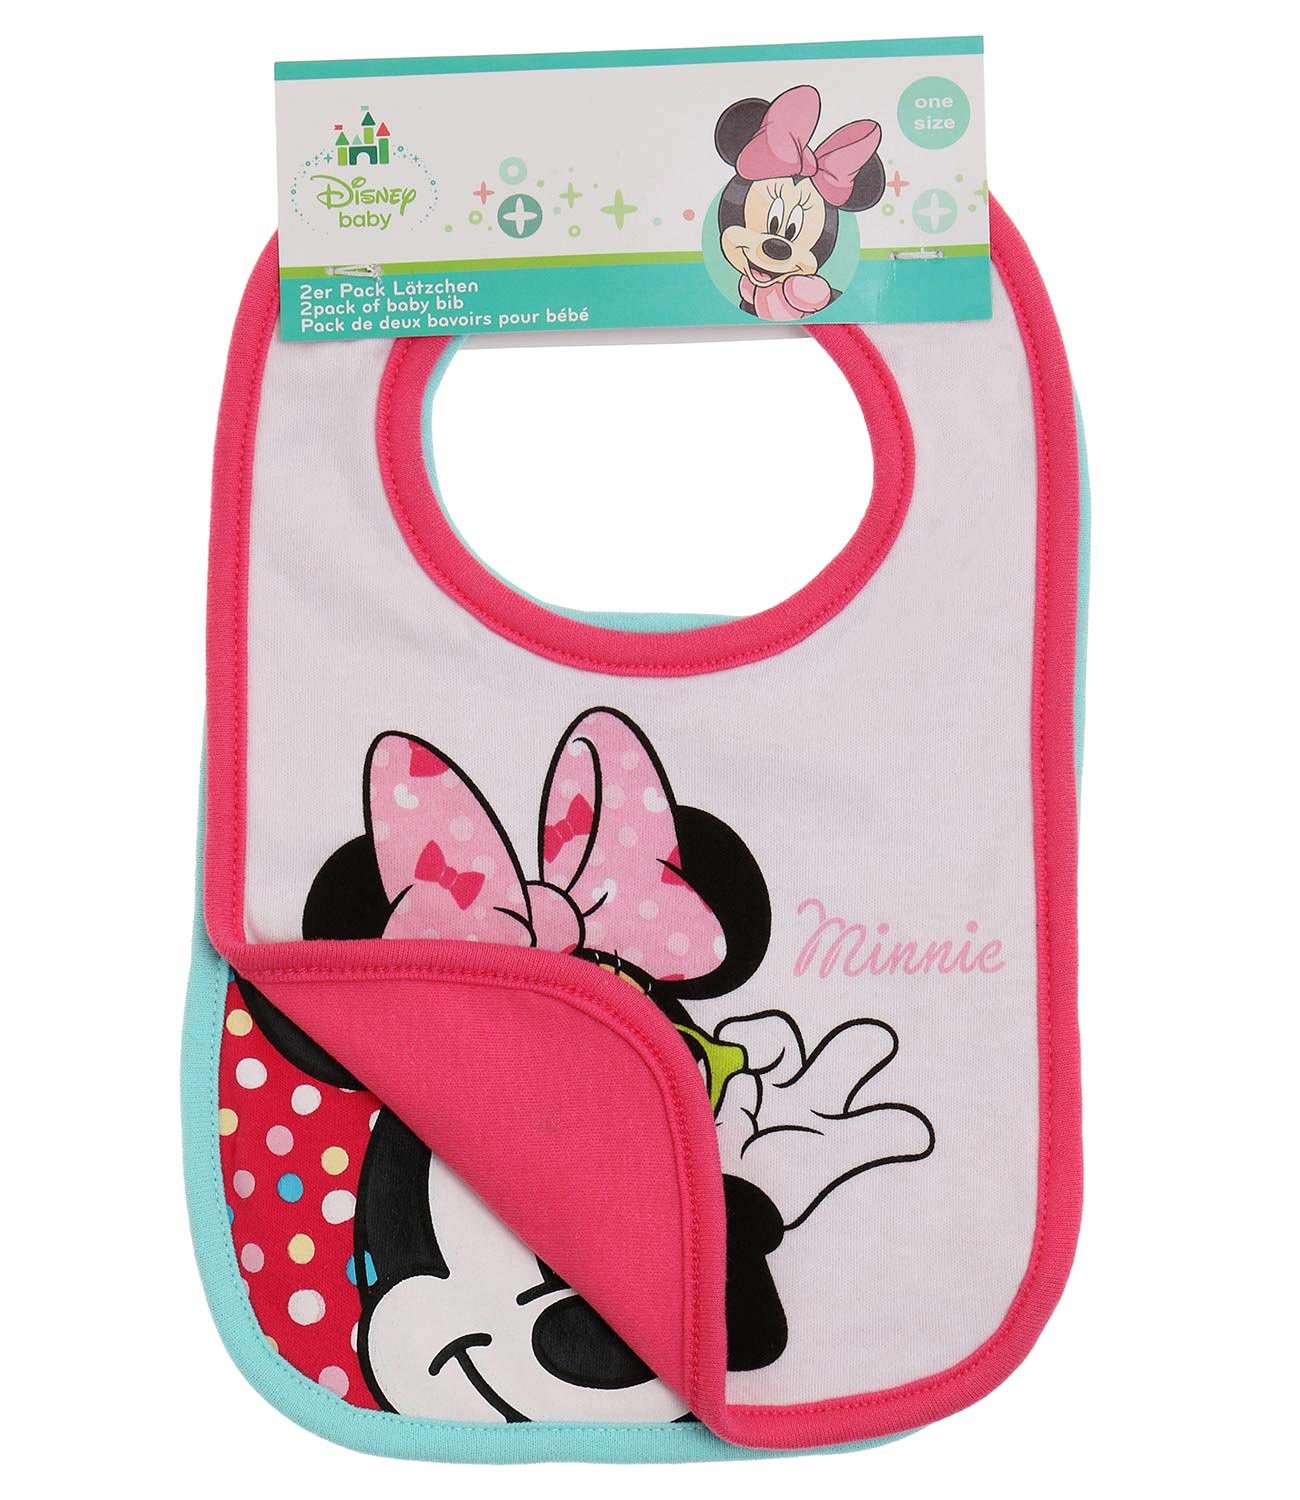 Disney Minnie Babies 2 pack bib 2016 Collection - fuchsia